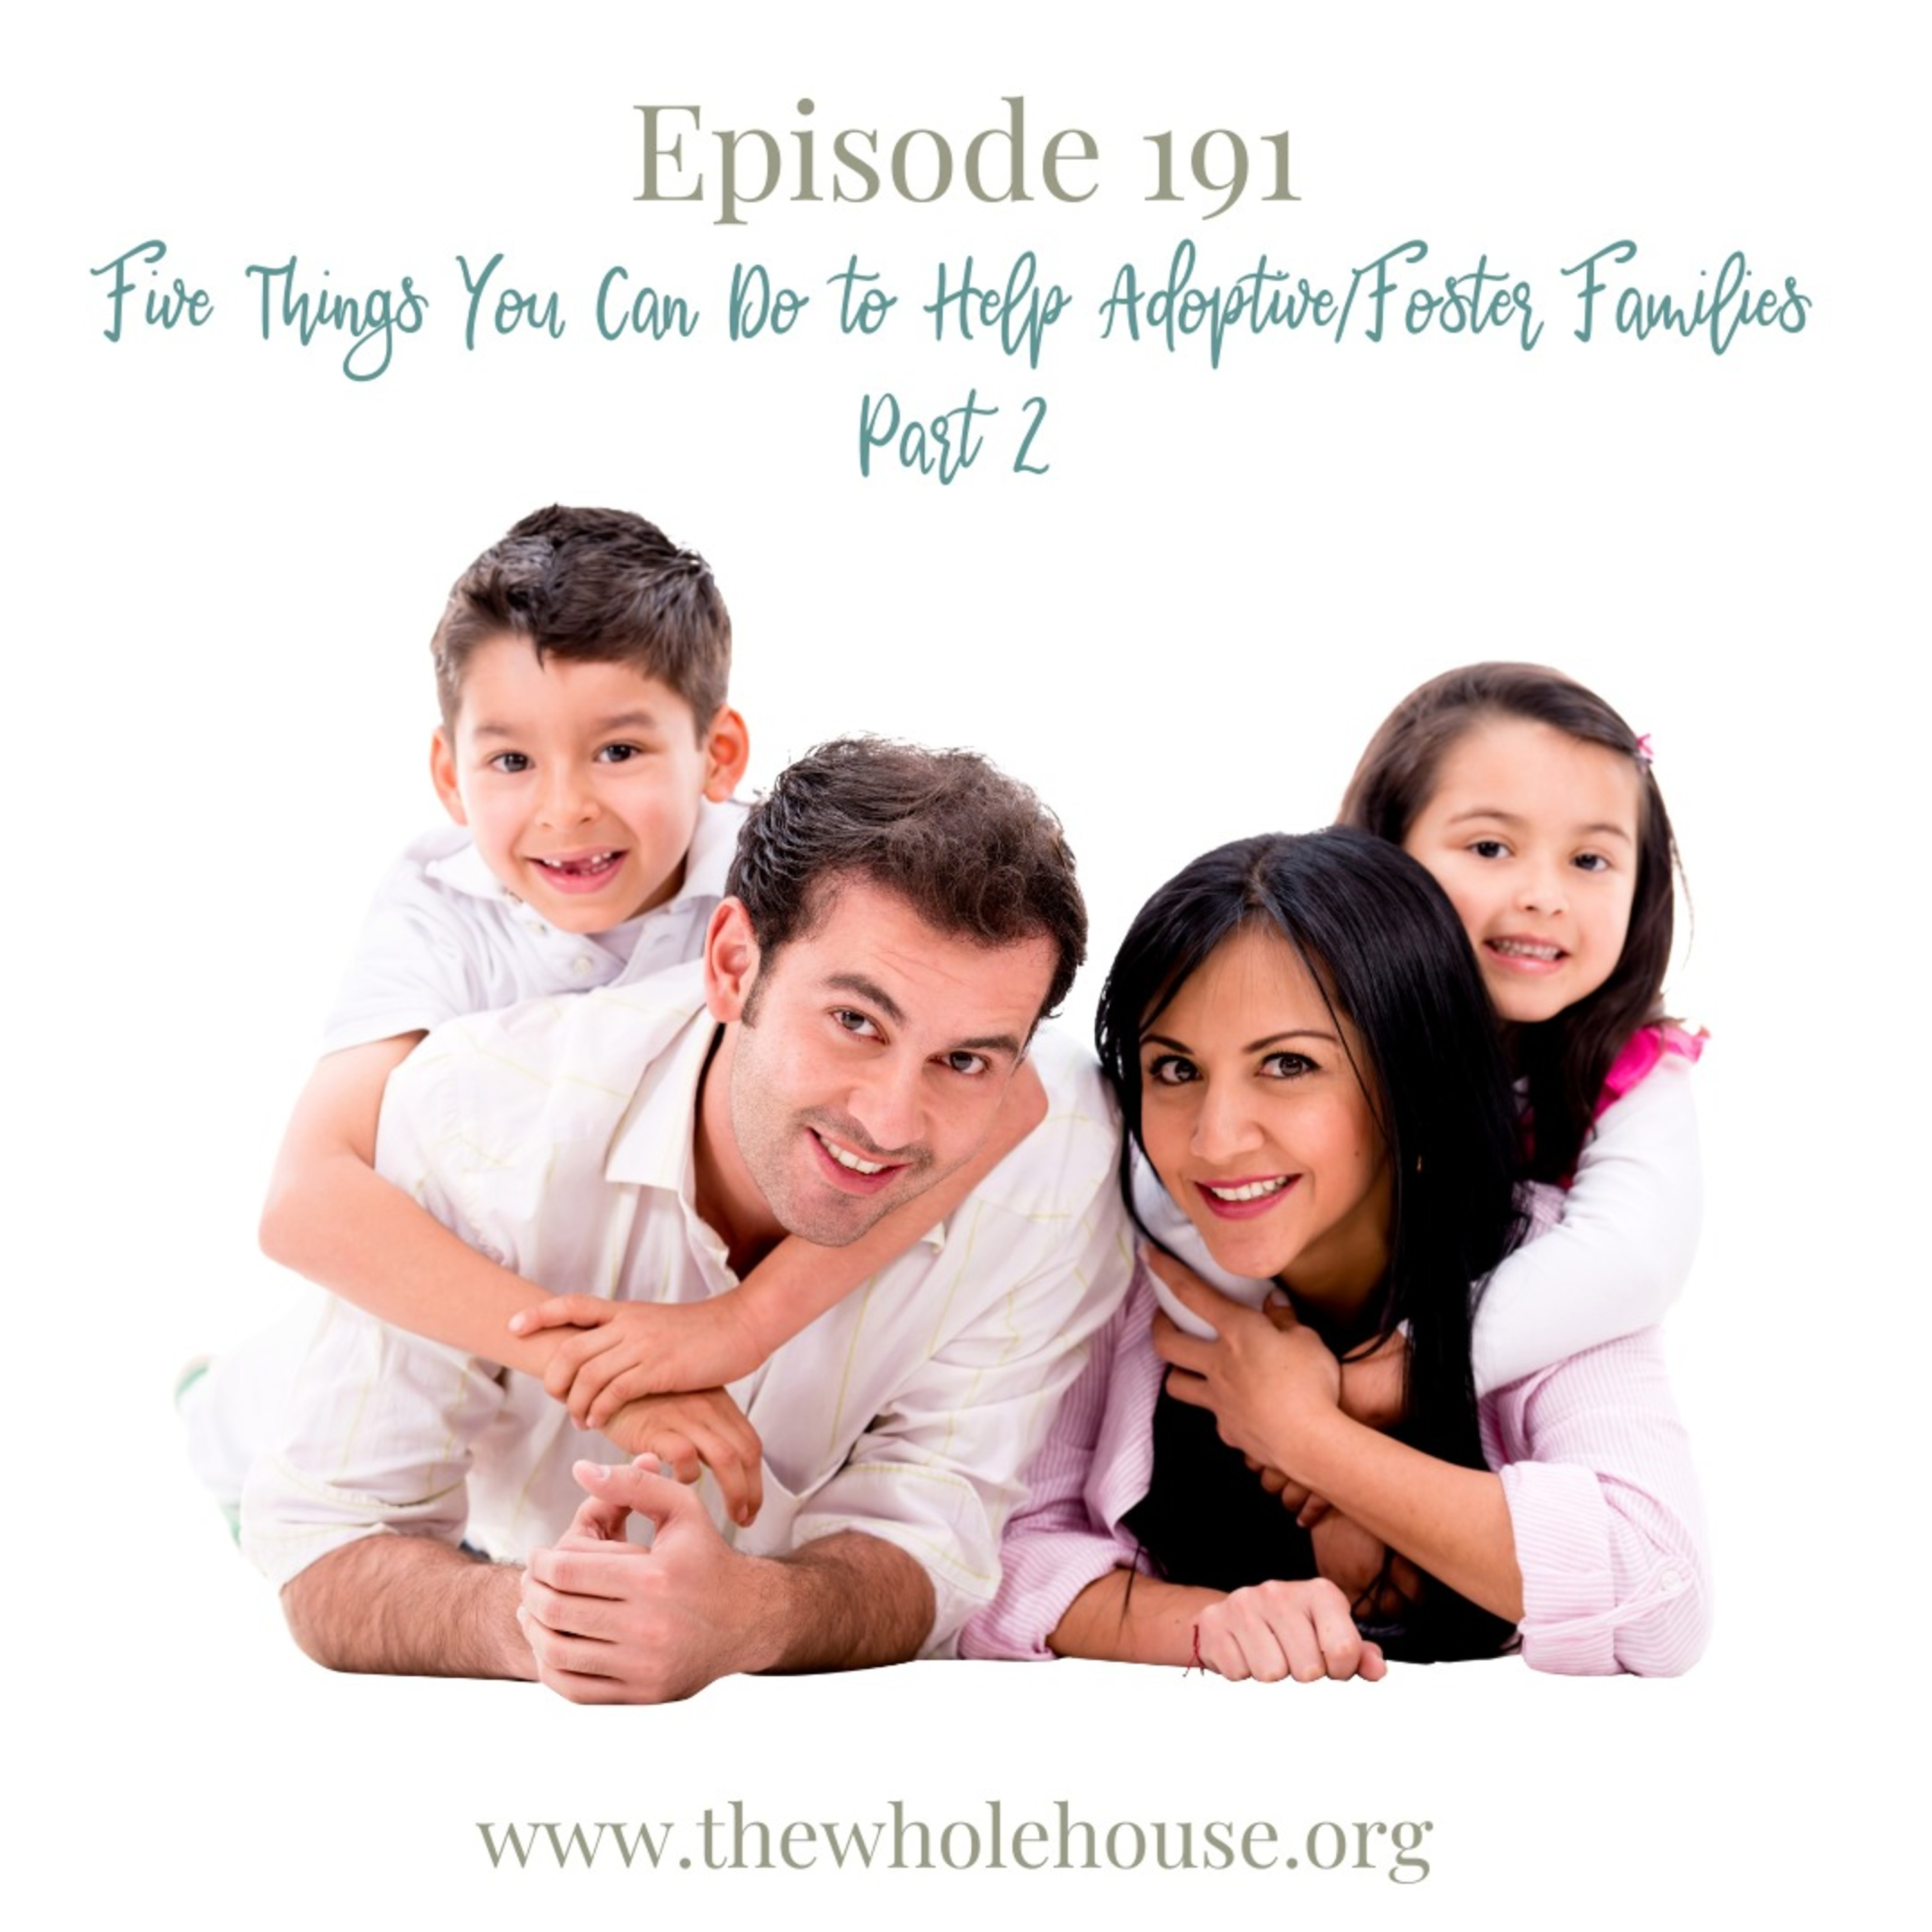 Five Things You Can Do To Help an Adoptive/Foster Family Part 2